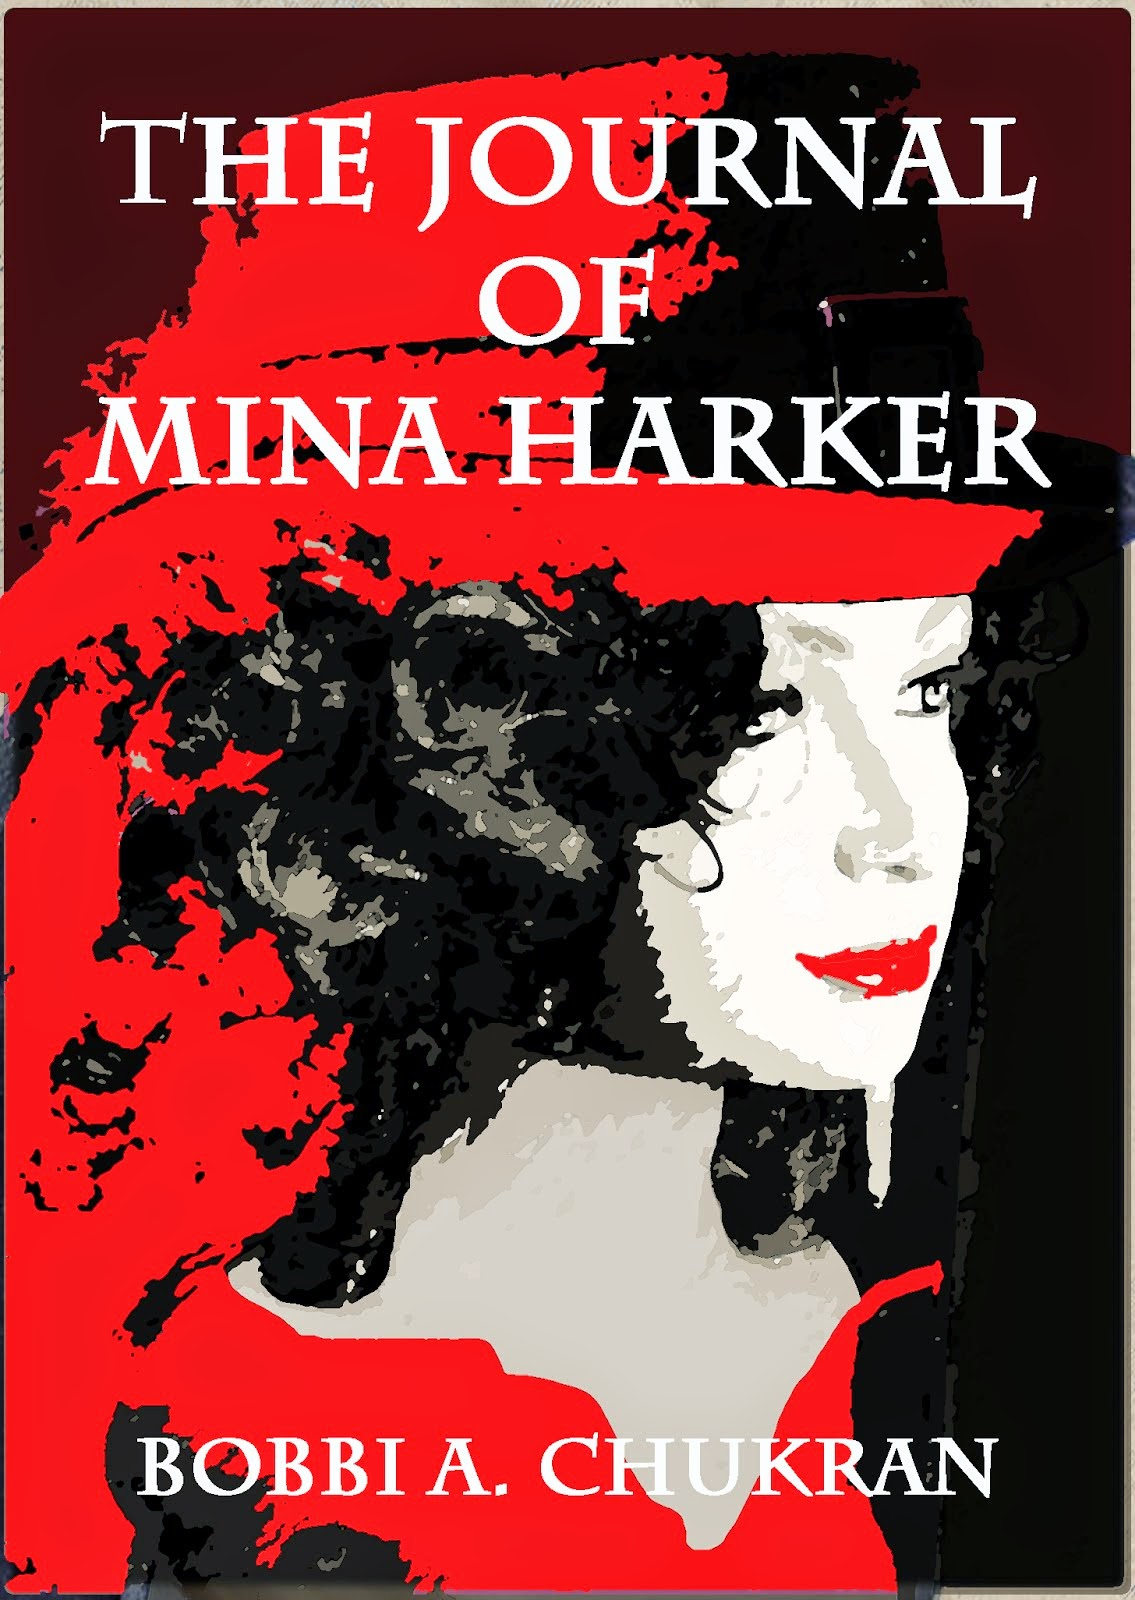 THE JOURNAL OF MINA HARKER--A Hilarious Vampire Spoof